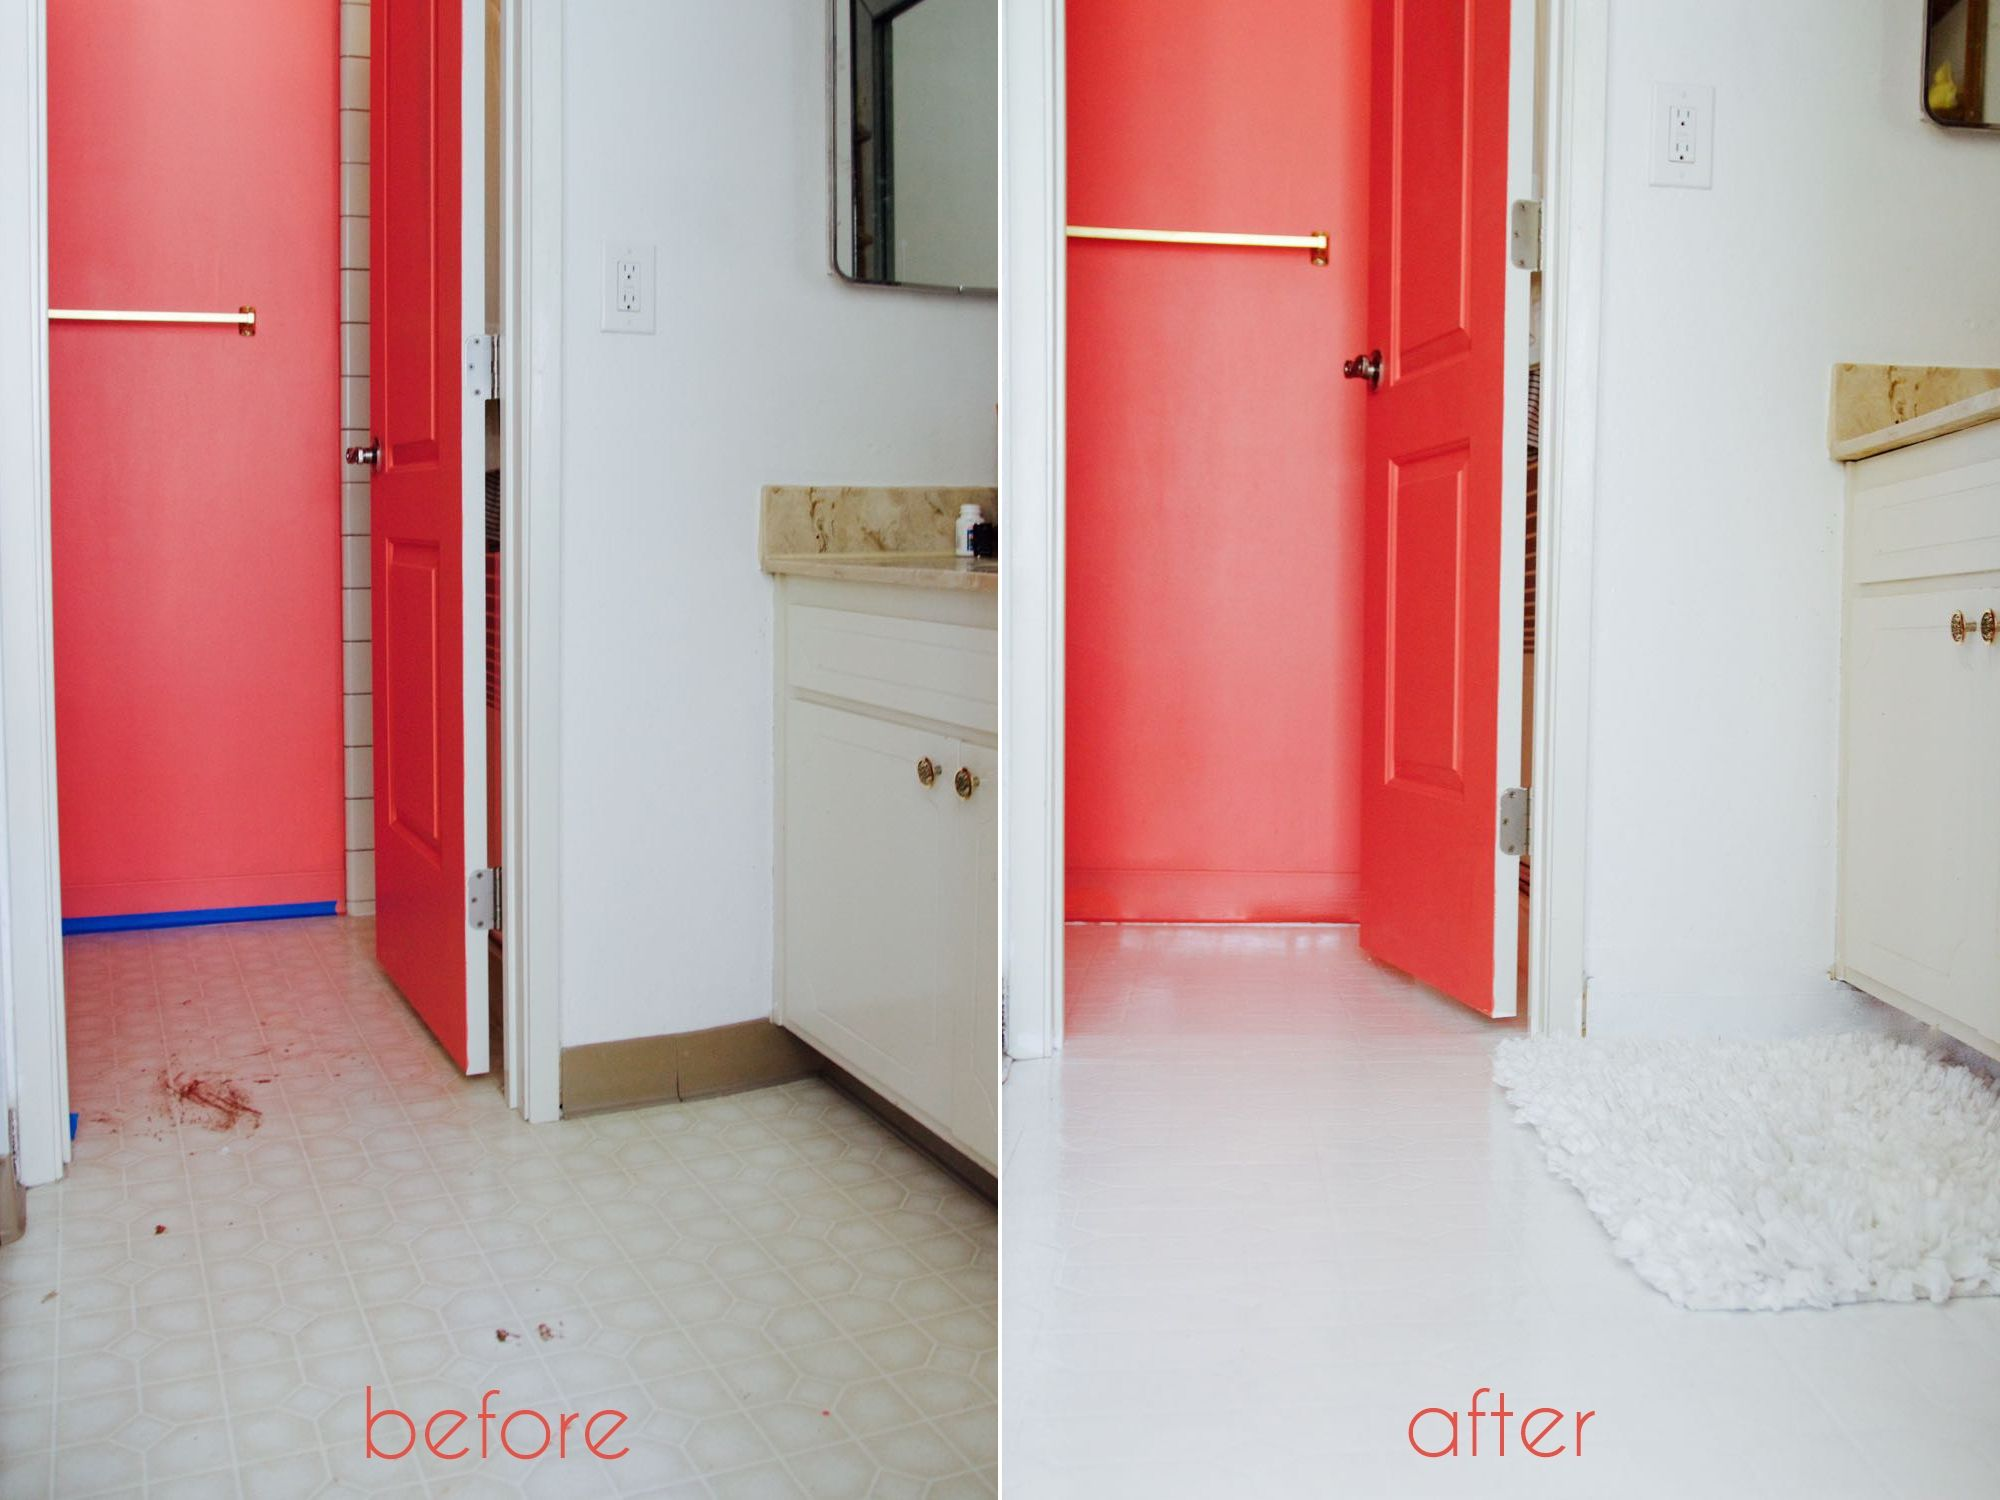 Bathroom Tile Paint Before And After Pictures | Bathroom Ideas ...